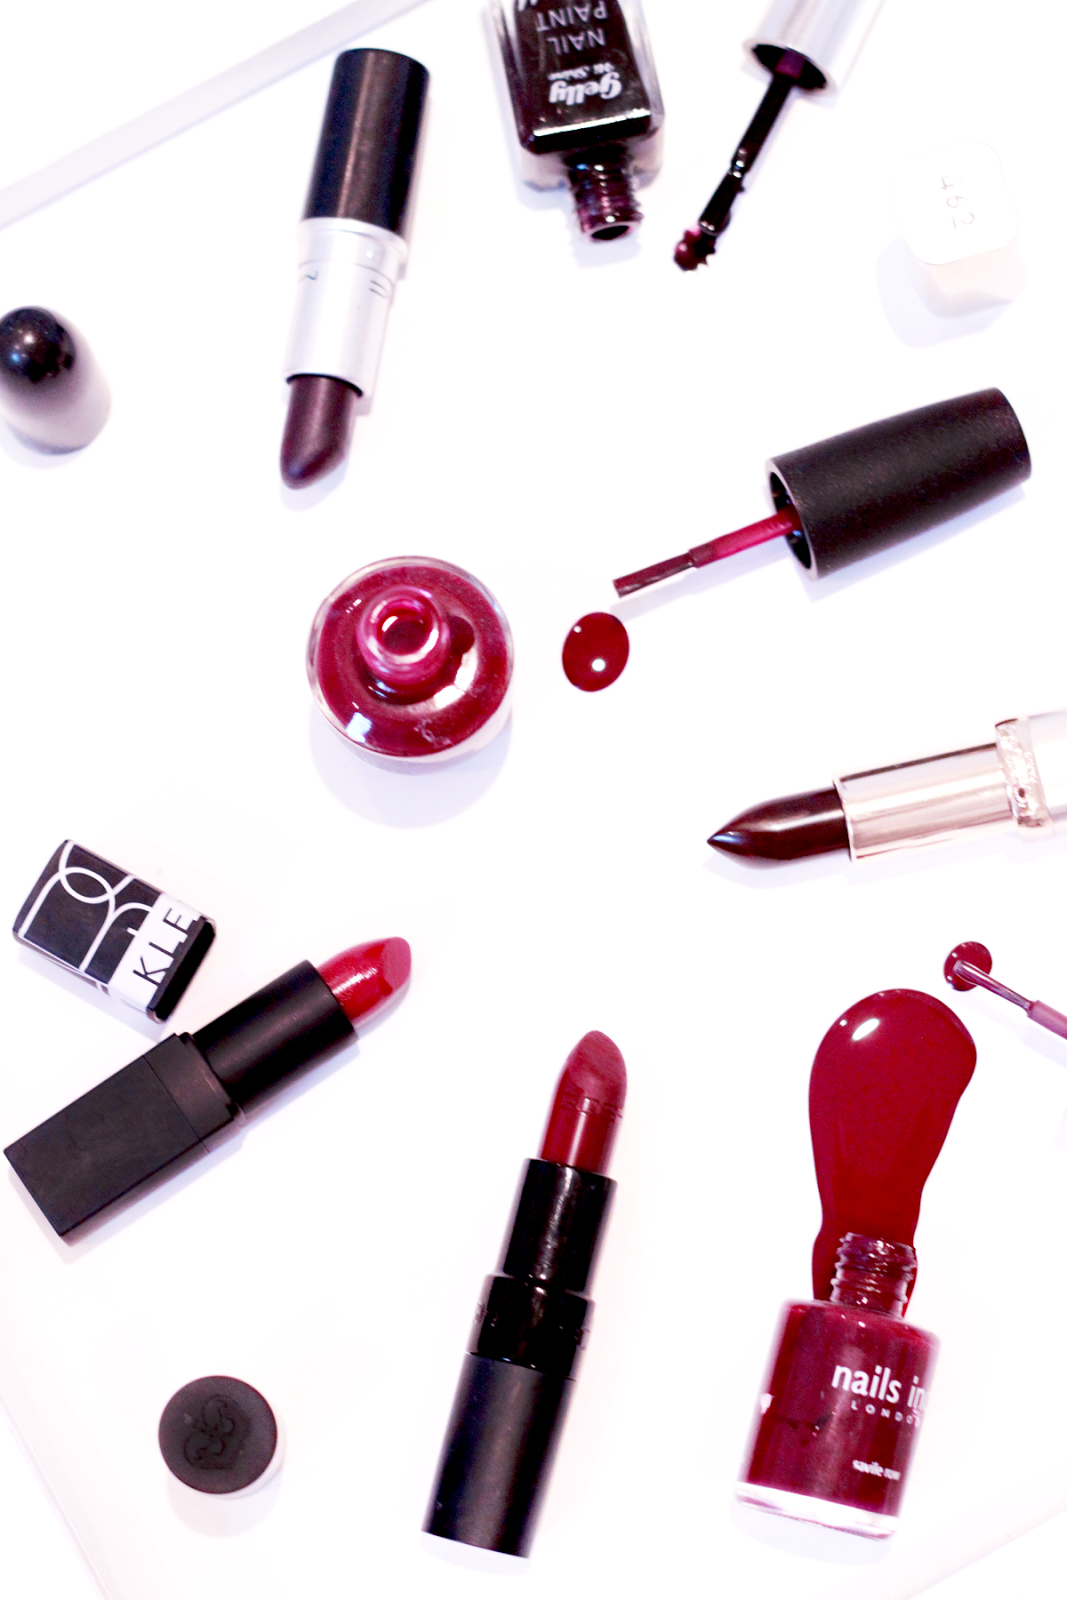 Image of lipsticks & nail combinations: Barry M Gelly Black Currant; OPI The Cable Car Pool; Nails Inc Saville Row